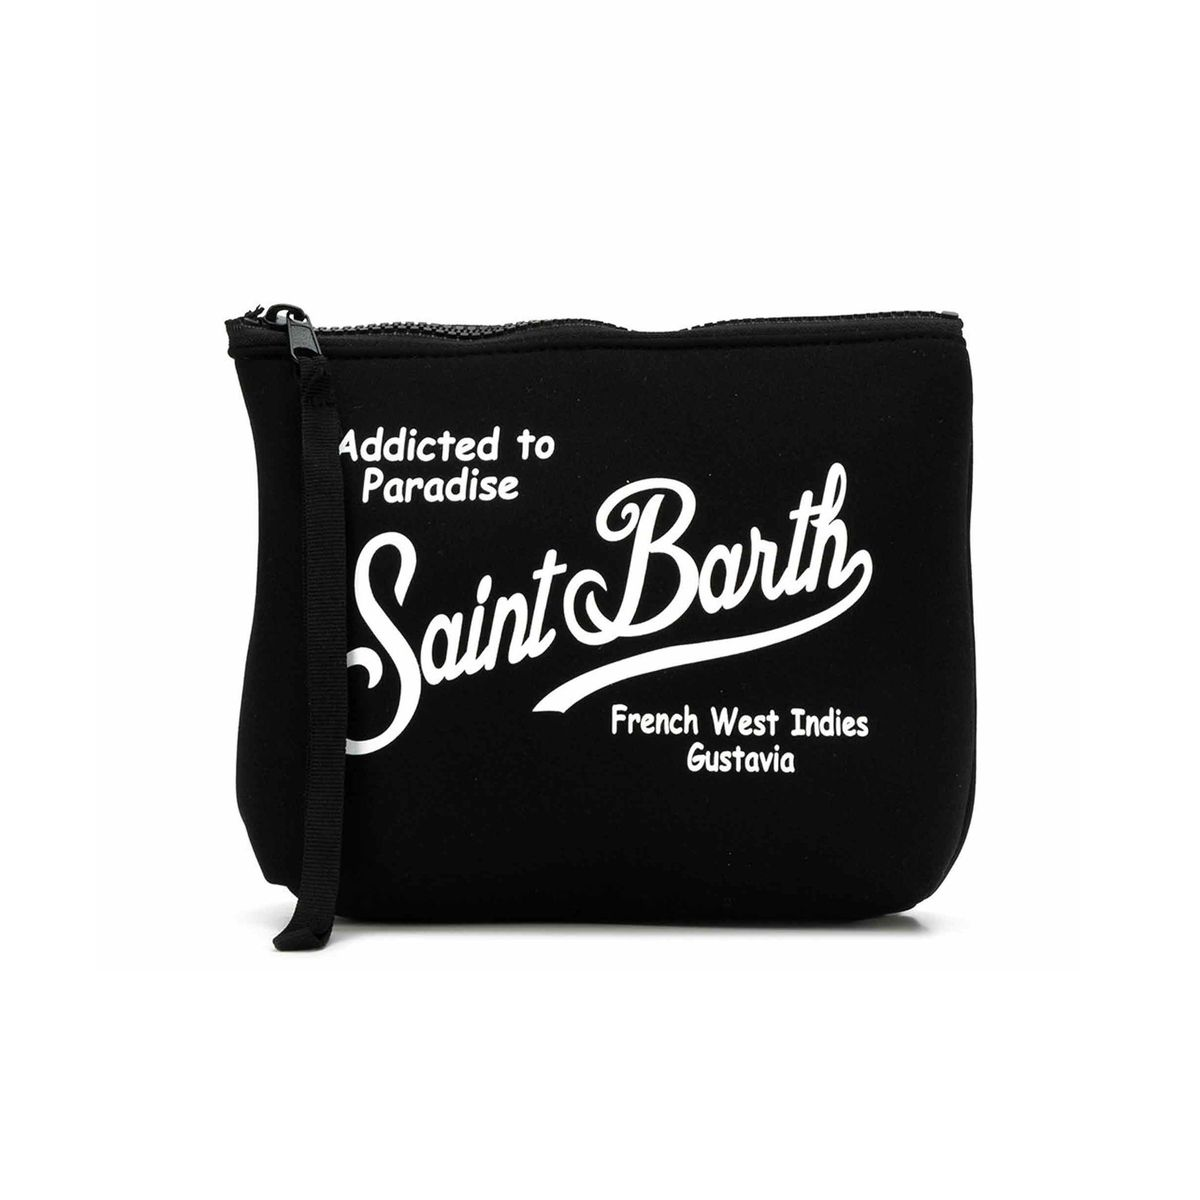 Aline clutch bag in scuba Black MC2 Saint Barth